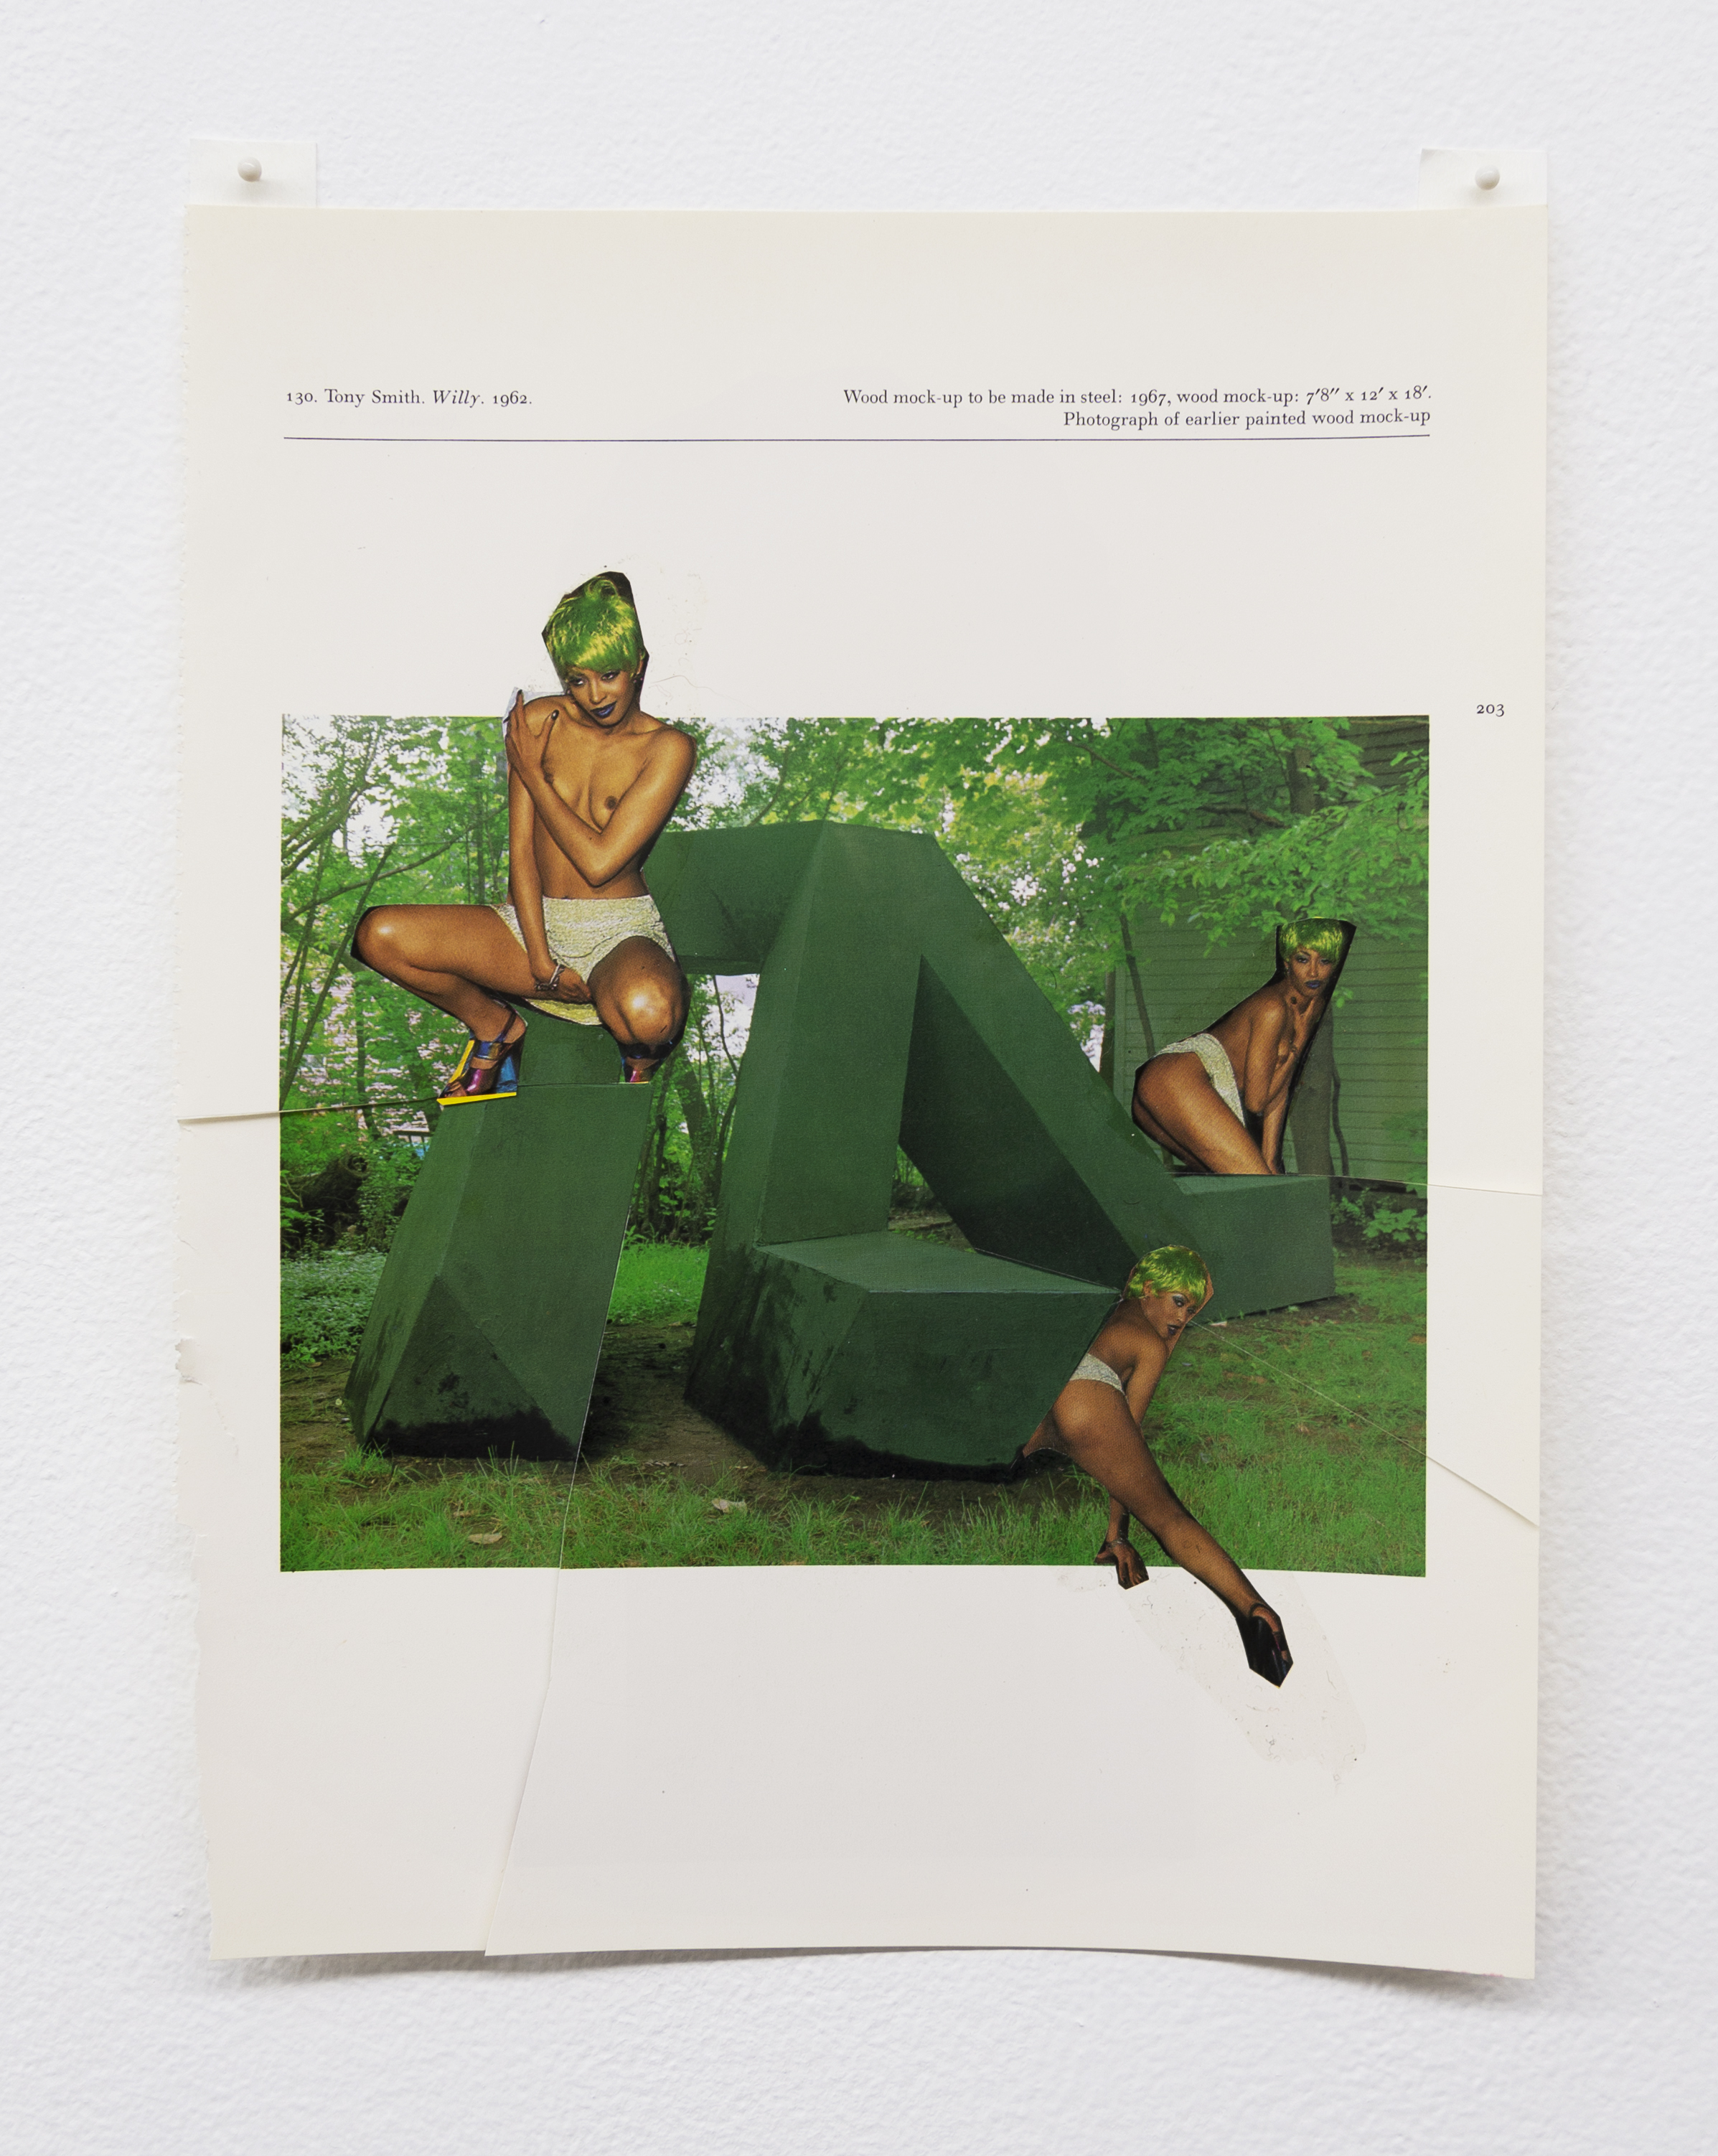 Narcissister,  Studies for Participatory Sculptures, Untitled (Posing in green wigs, after Tony Smith) , 2018, Paper, rubber cement, 10.75 x 8.5 in